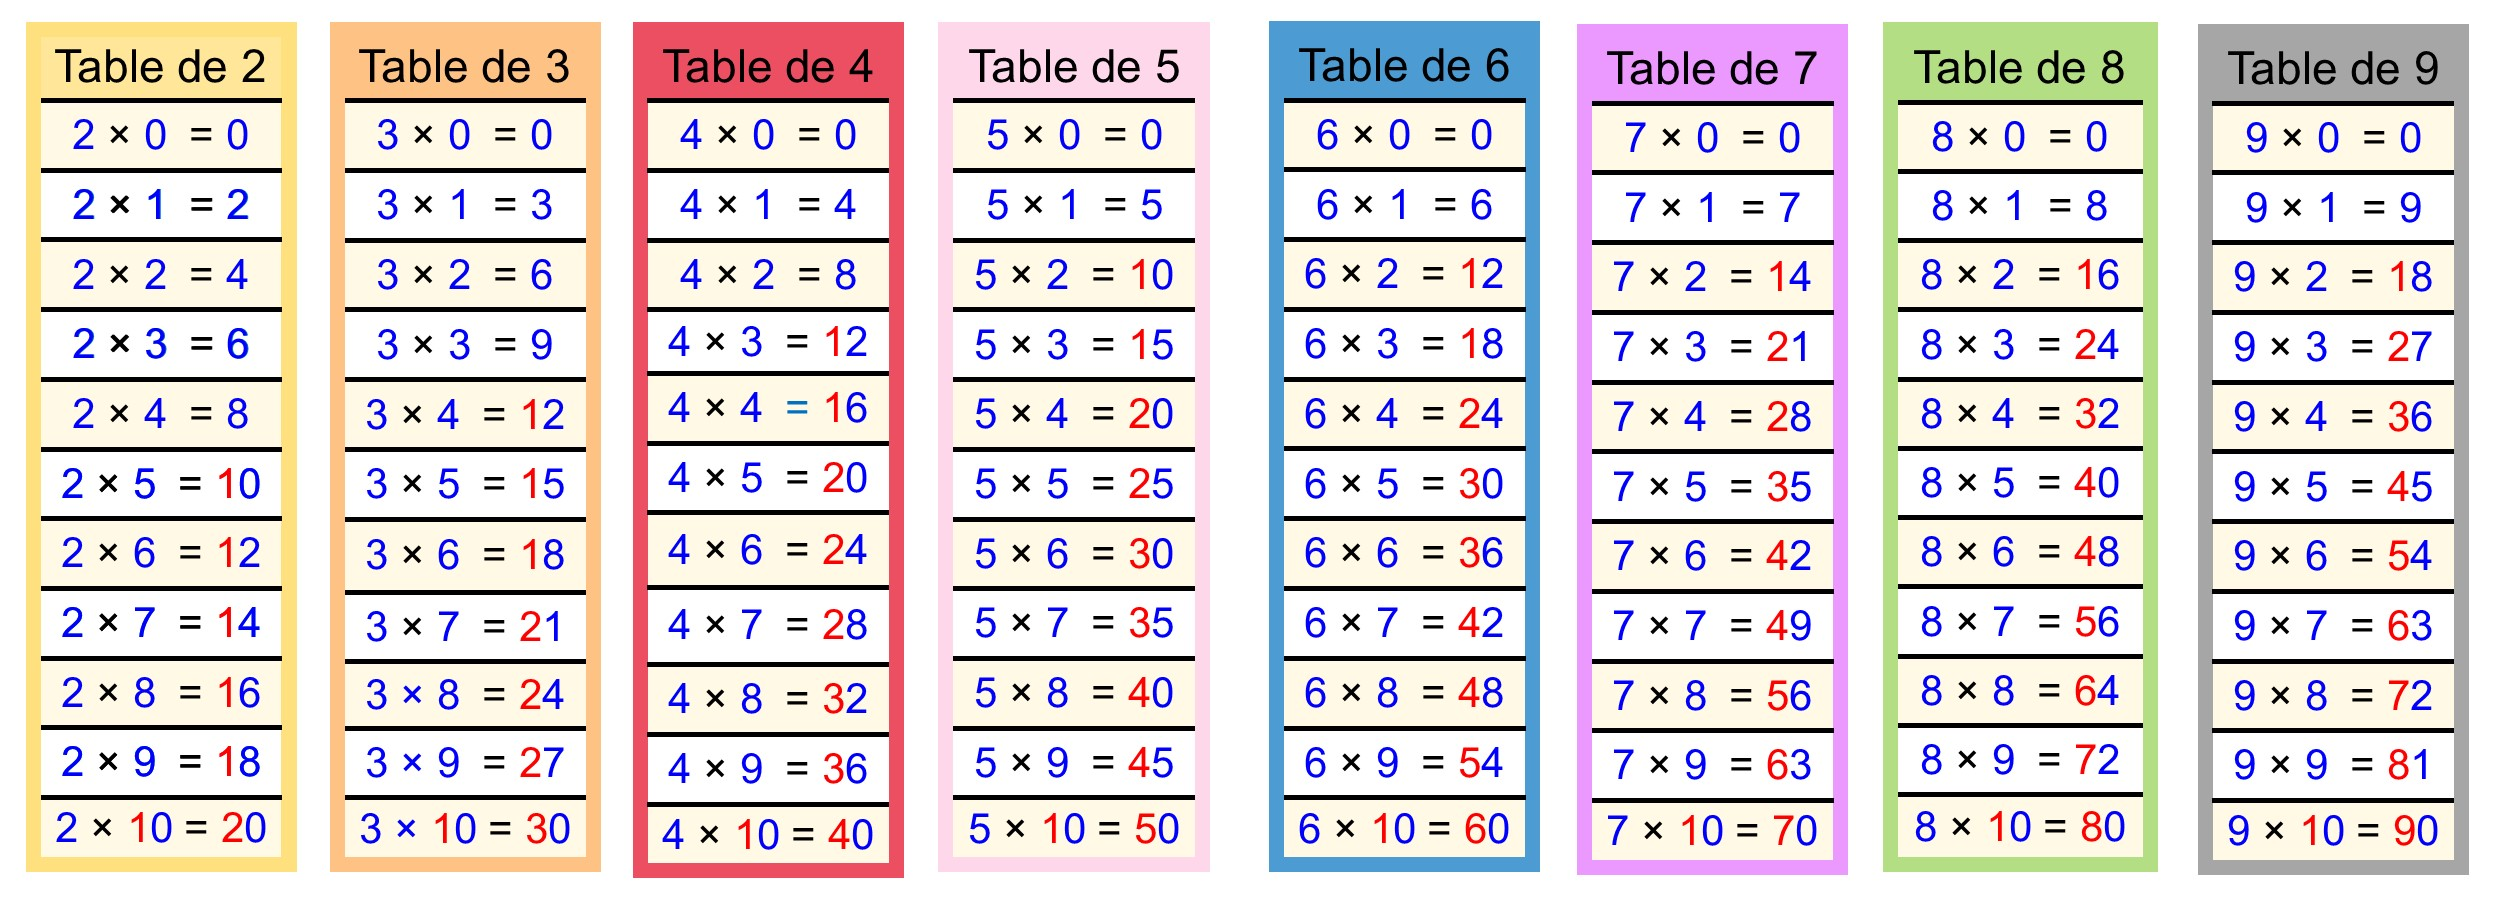 Calculer cartable fantastique - Table de multiplication chronometre ...